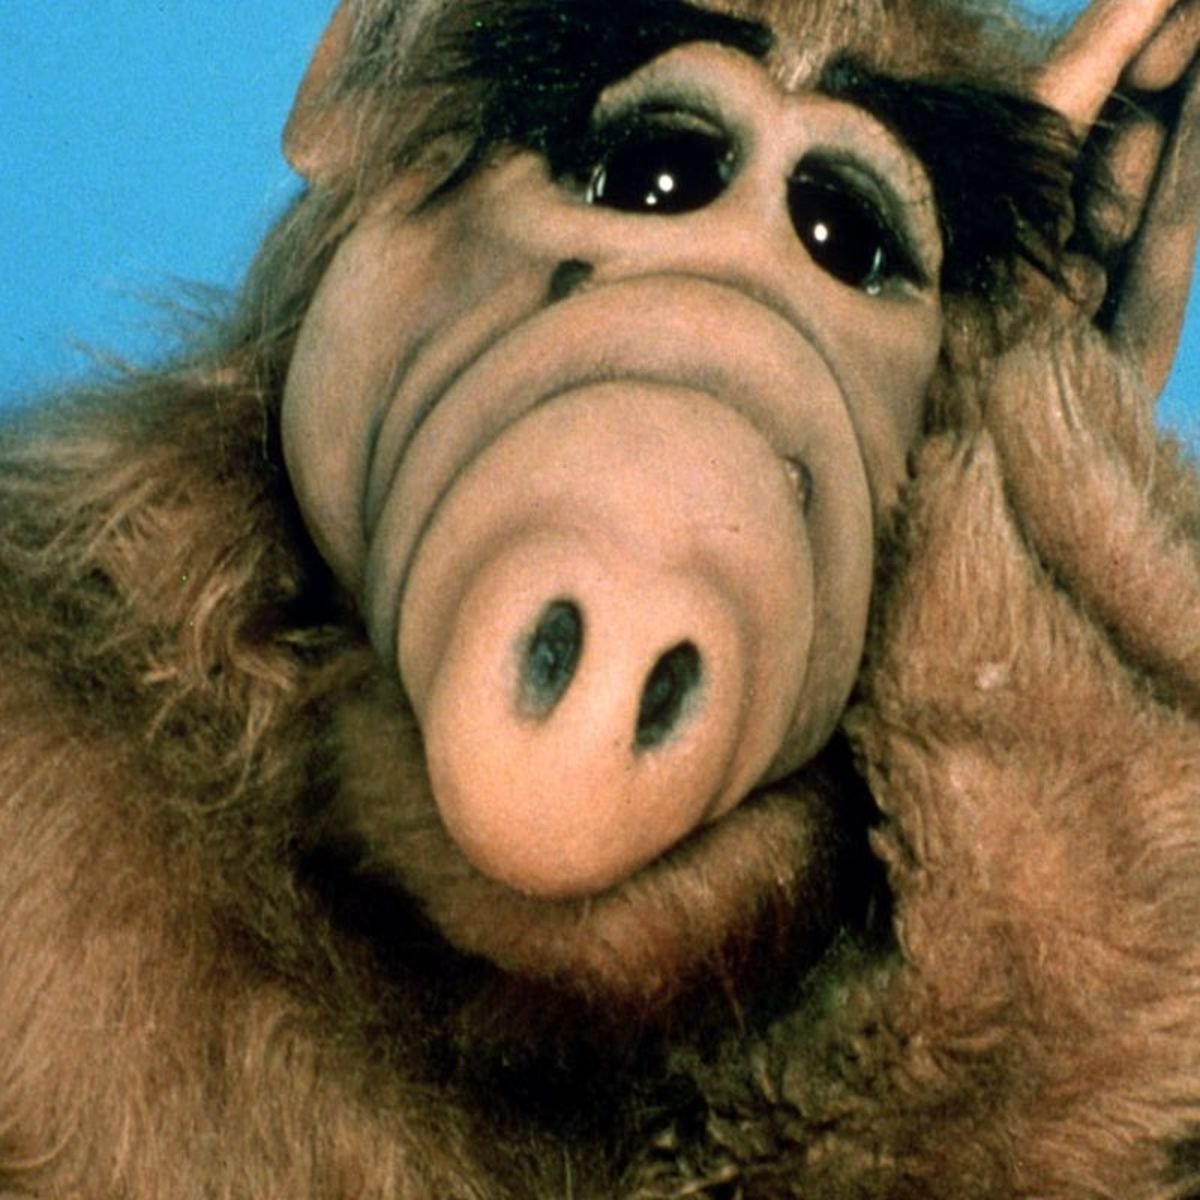 'ALF' reboot in early development at Warner Bros